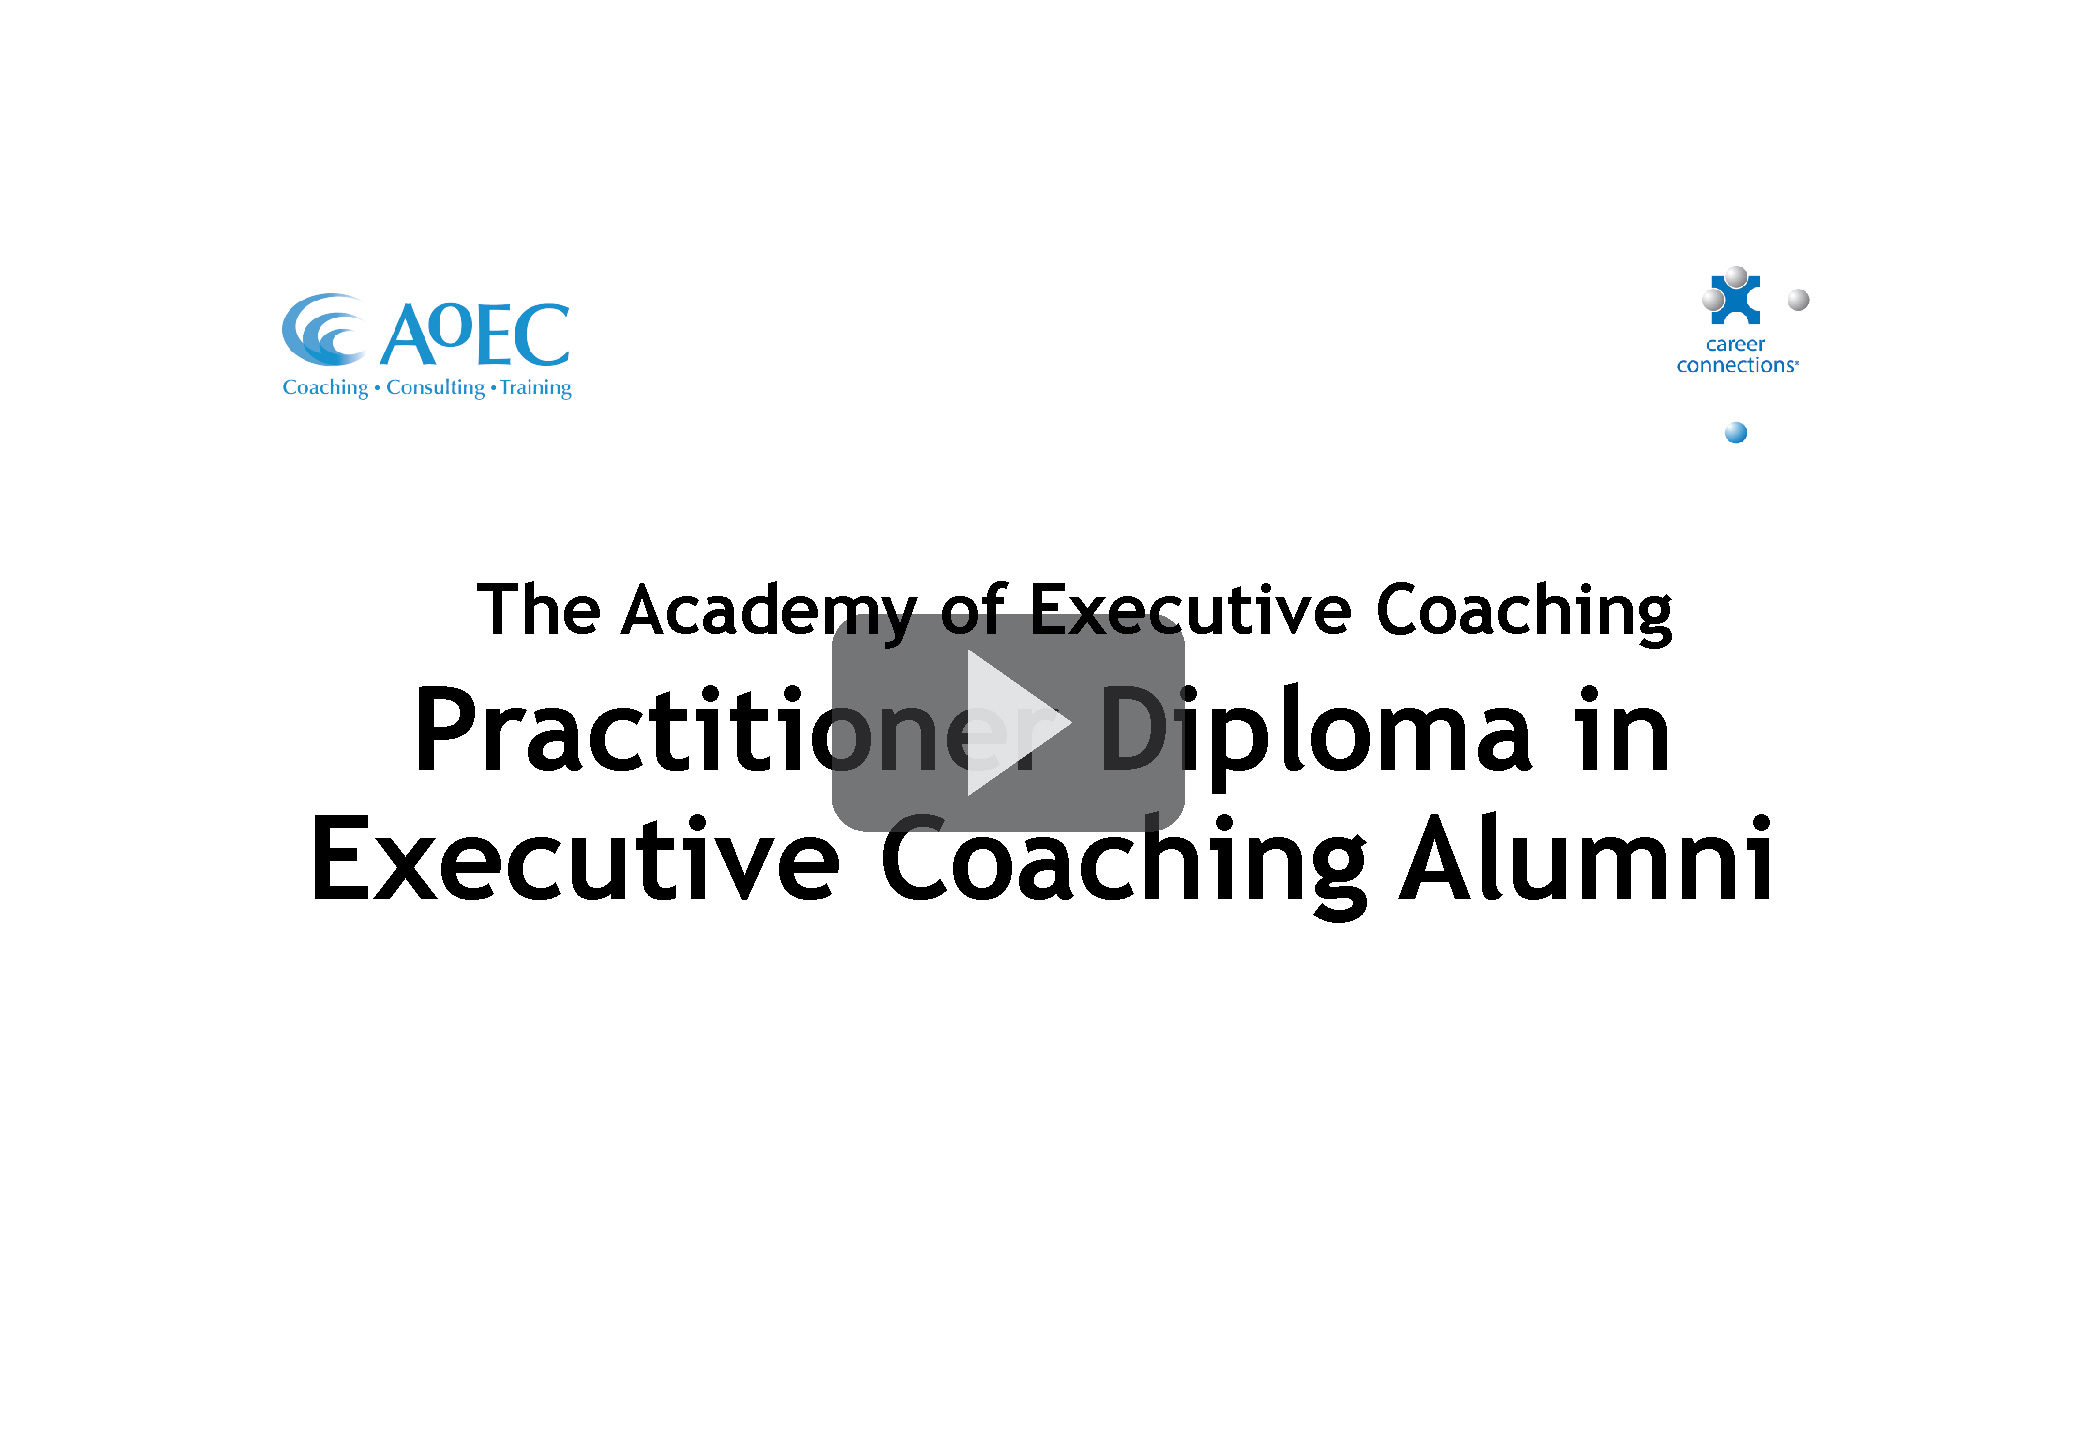 The Practitioner Diploma in Executive Coaching Alumni